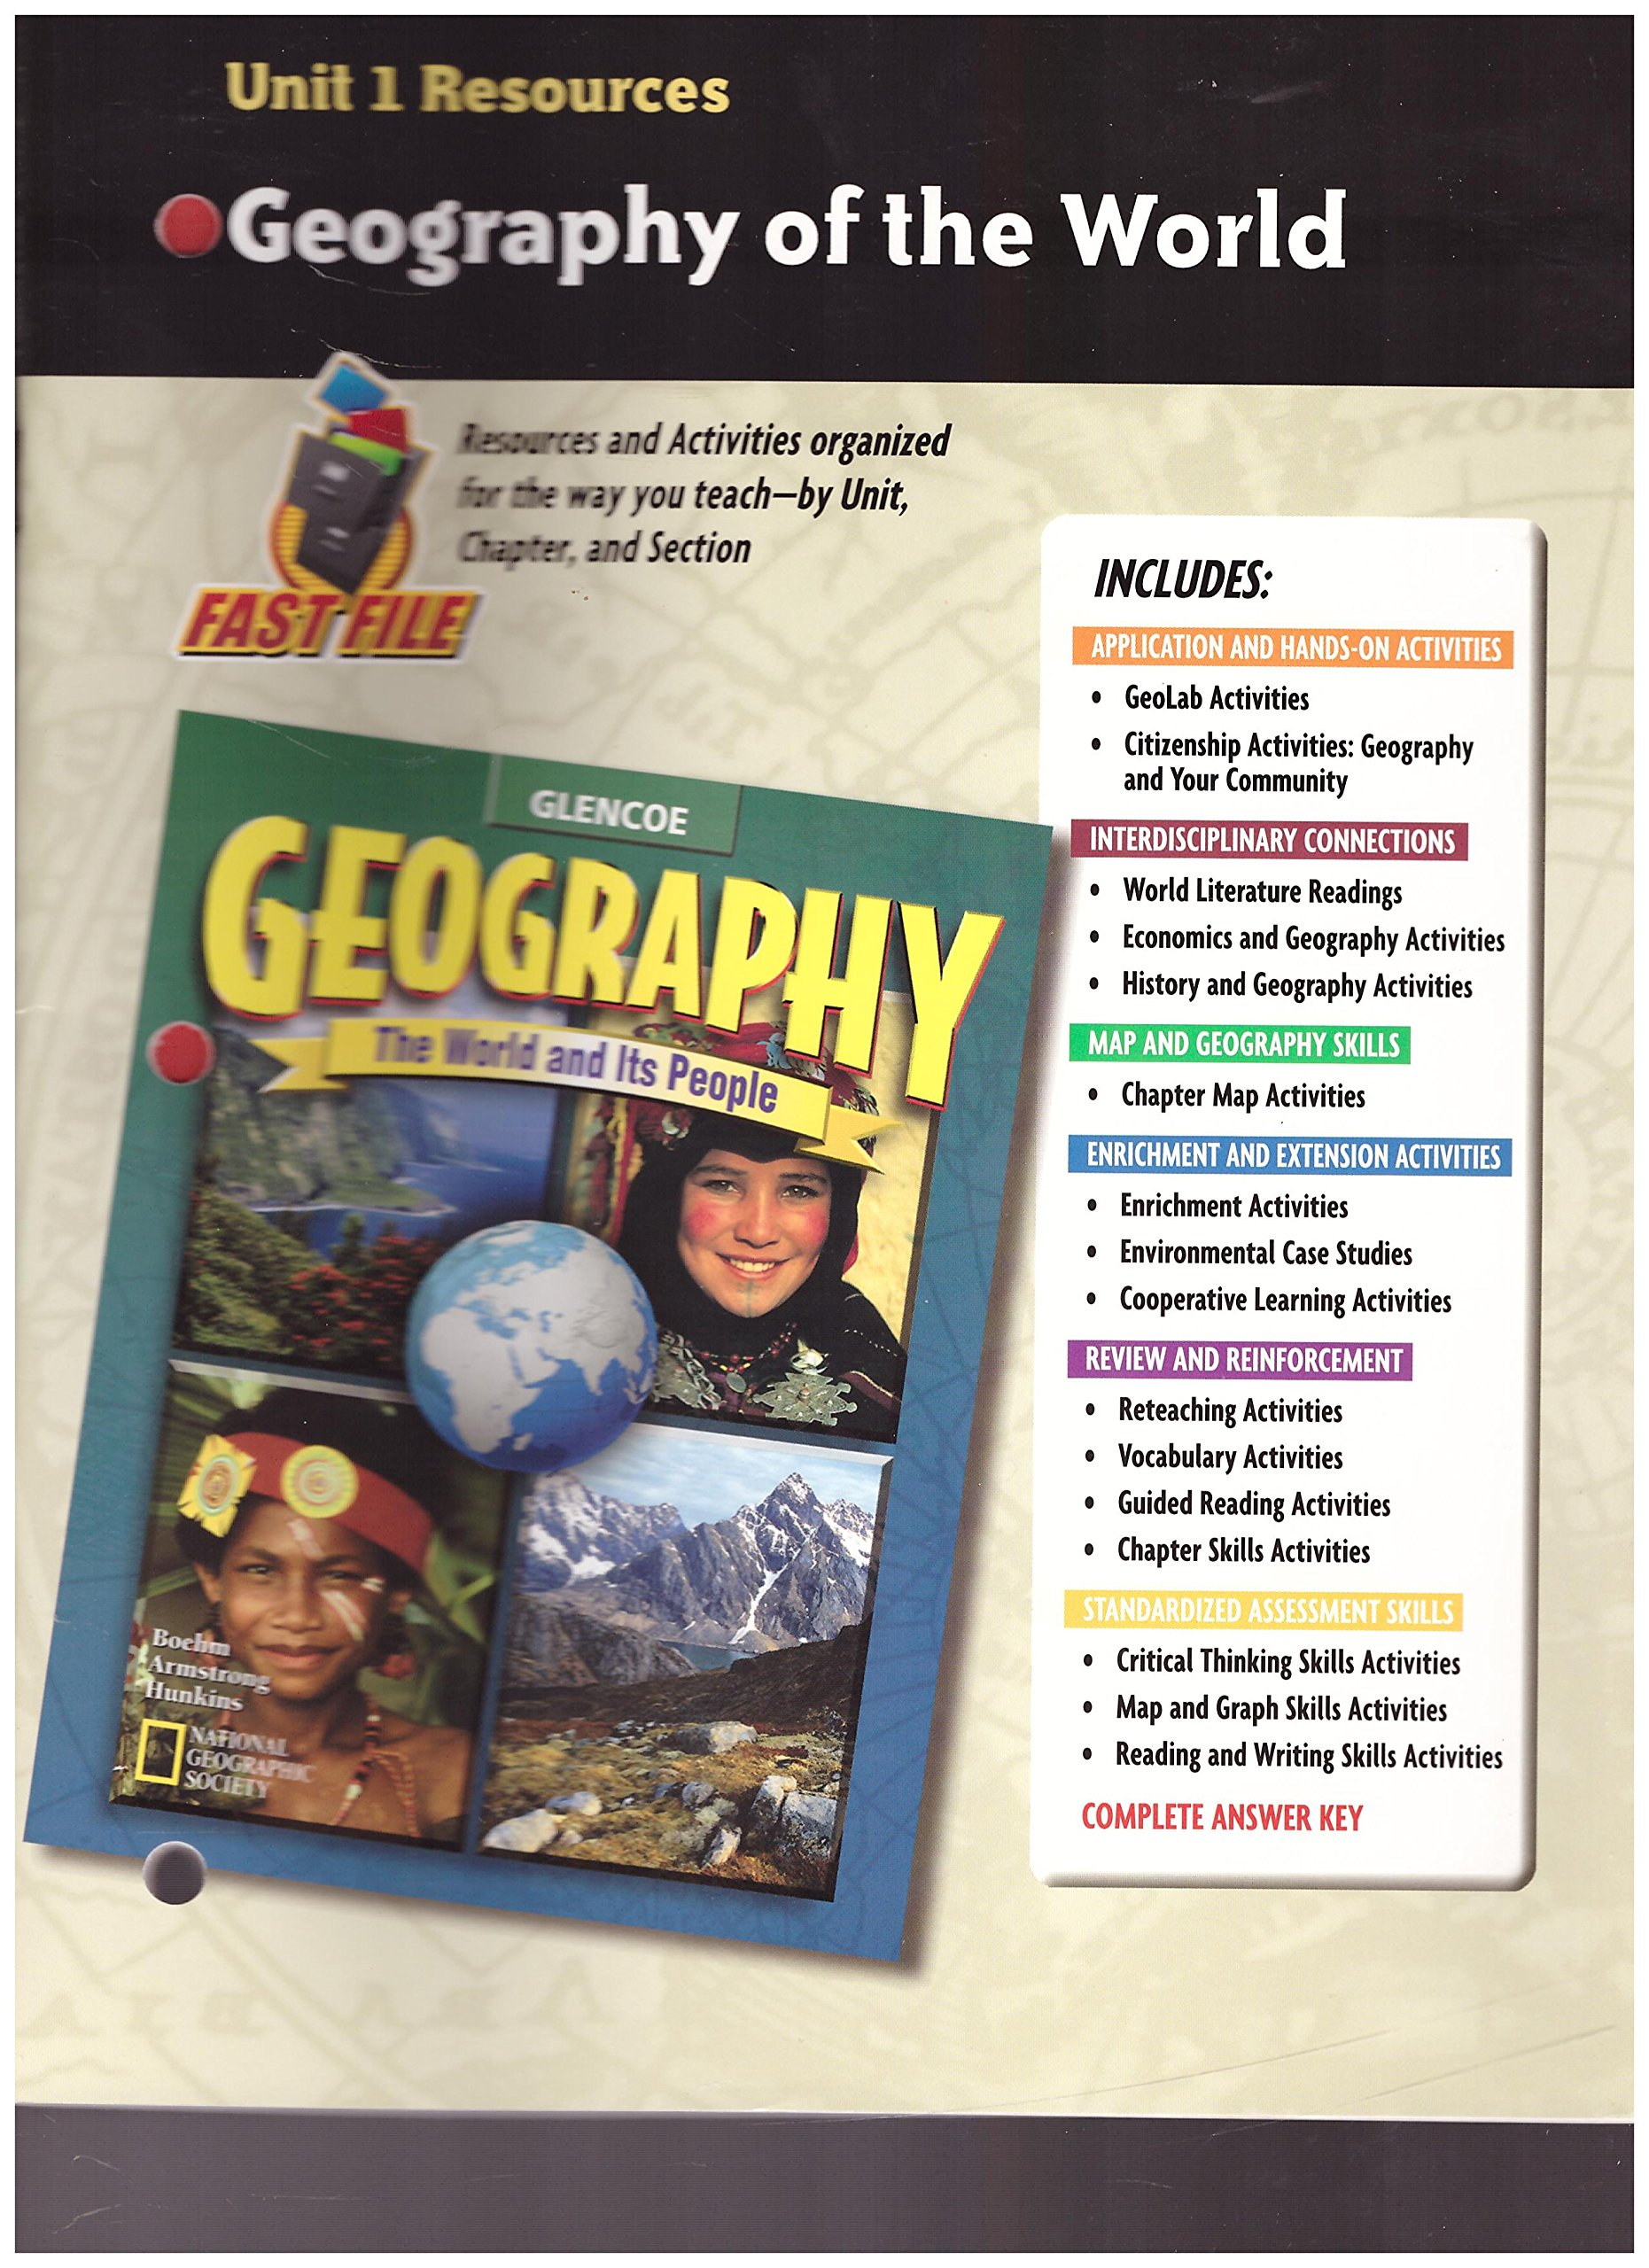 Geography: The World and Its People, Unit 1 Resources